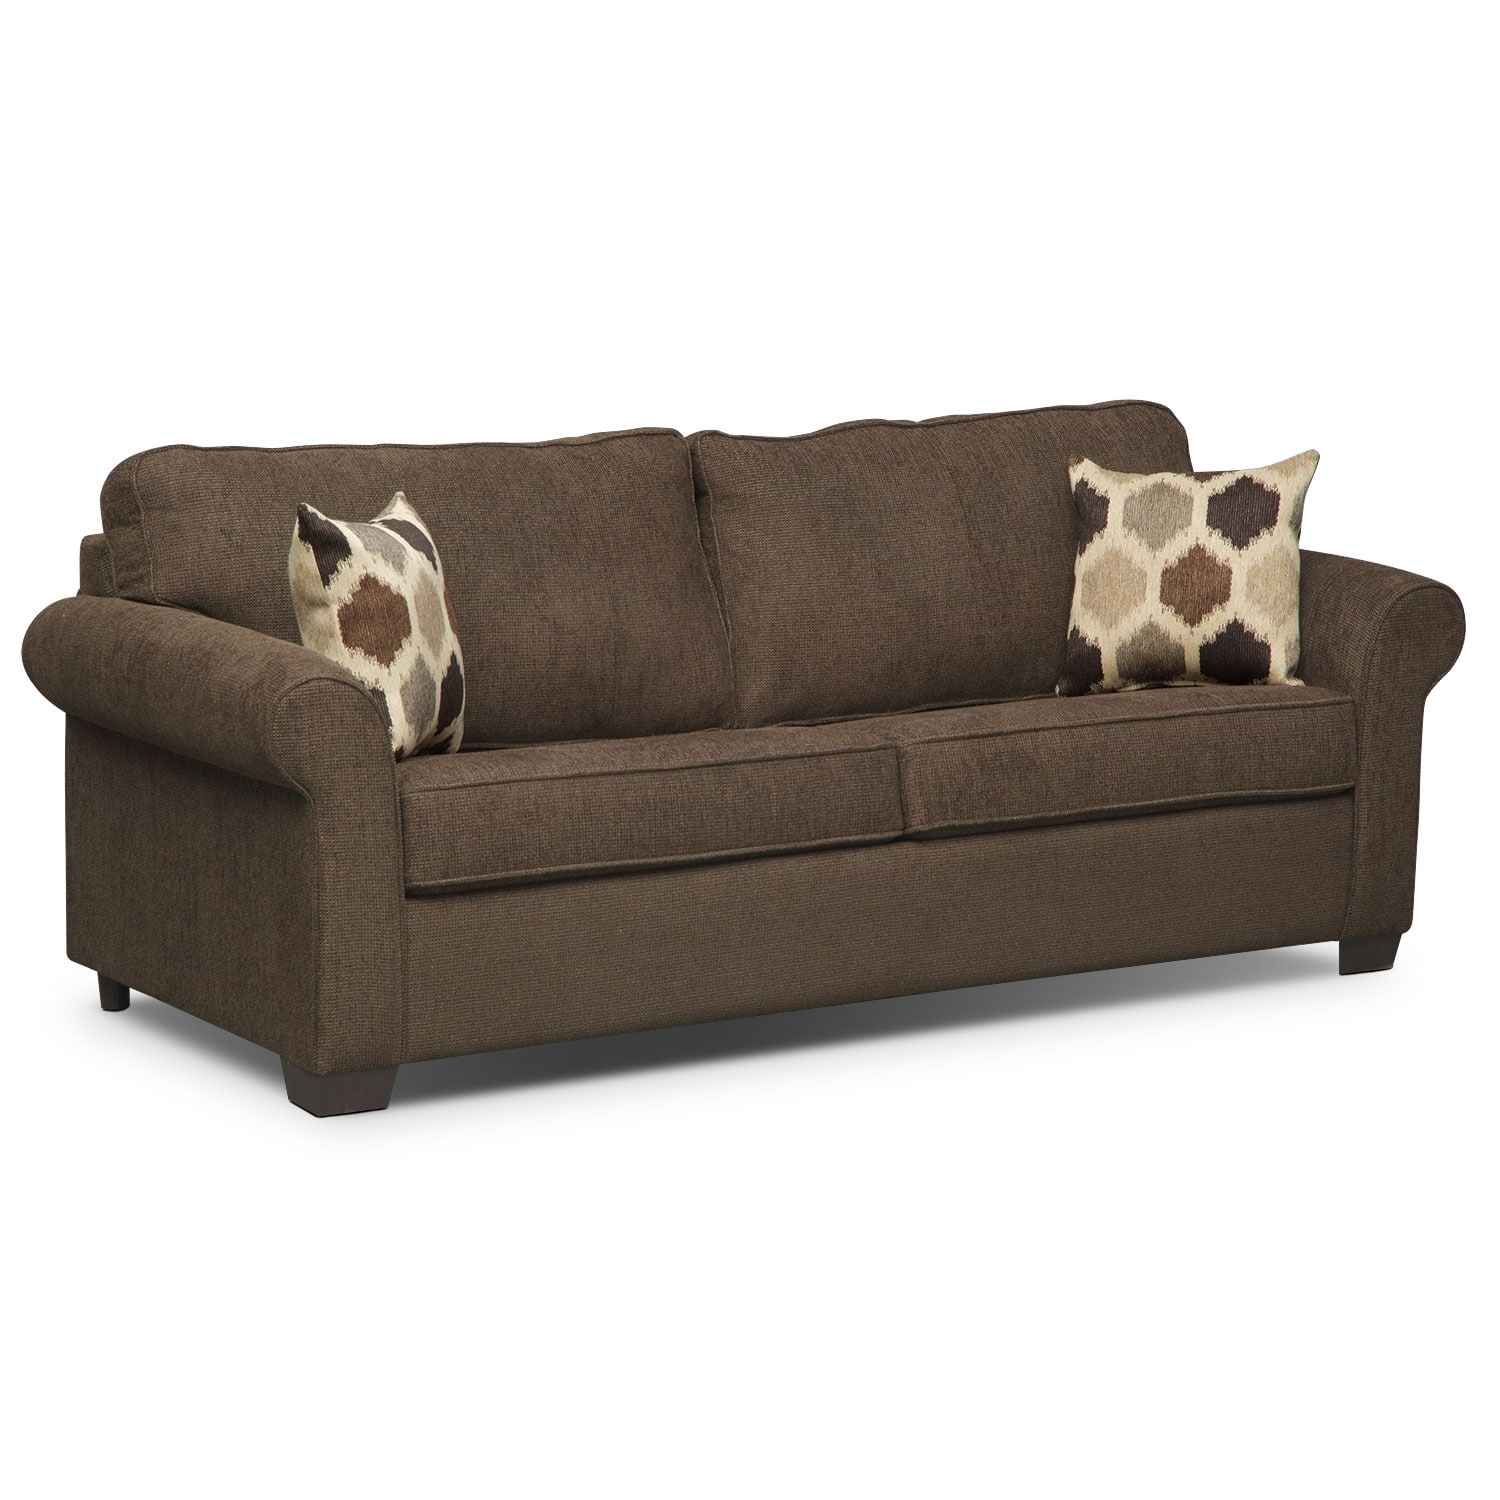 Fletcher Queen Memory Foam Sleeper Sofa - Chocolate